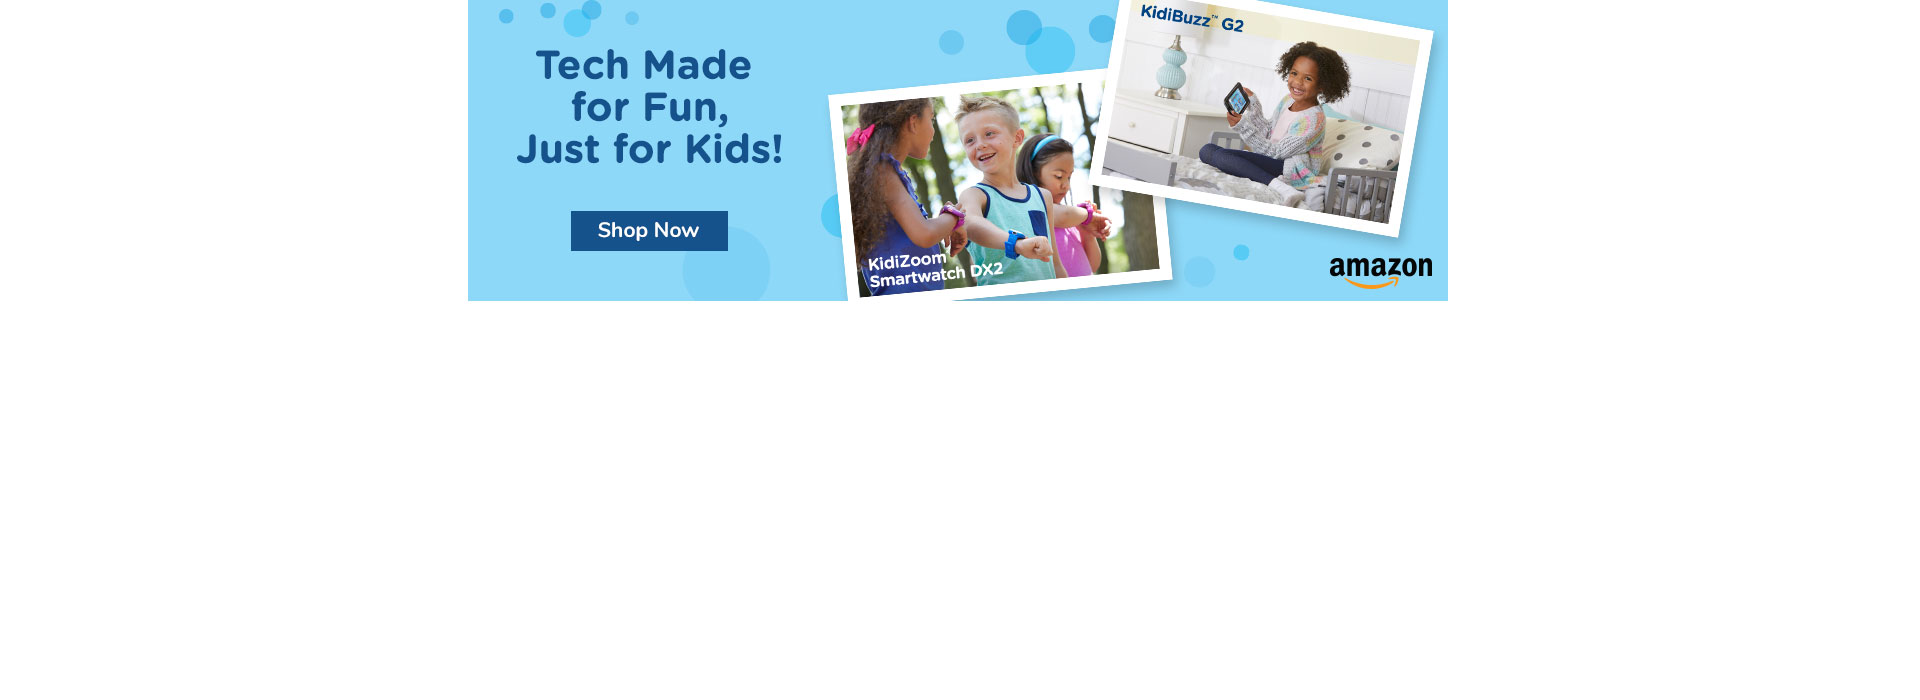 Amazon Gift-Giving with tech just for kids